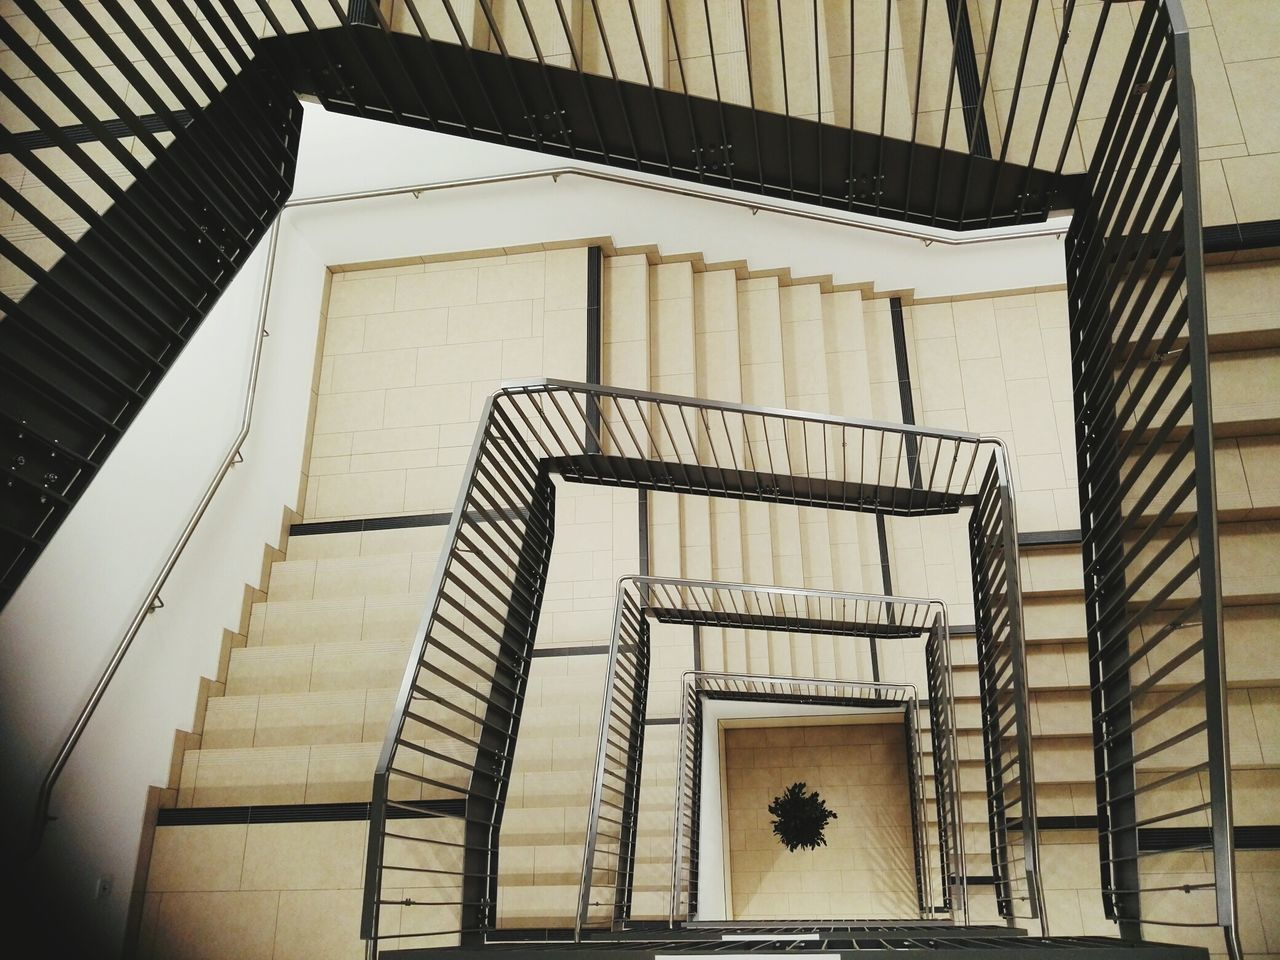 steps, staircase, steps and staircases, railing, spiral, architecture, spiral stairs, stairs, built structure, hand rail, design, in a row, fire escape, building exterior, no people, spiral staircase, day